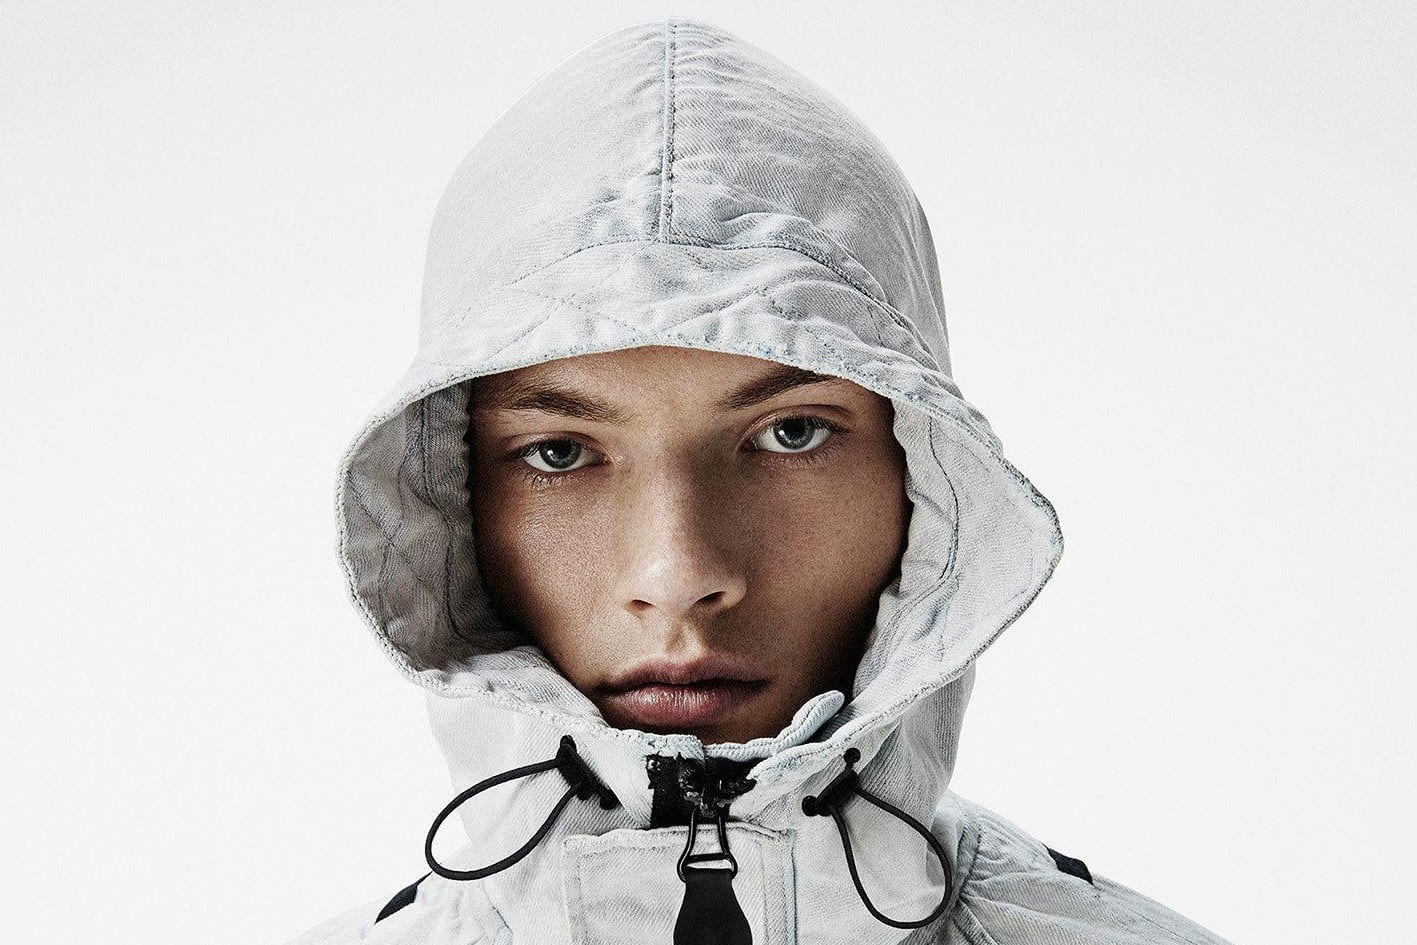 G Star Raw Aitor Throup Antidote